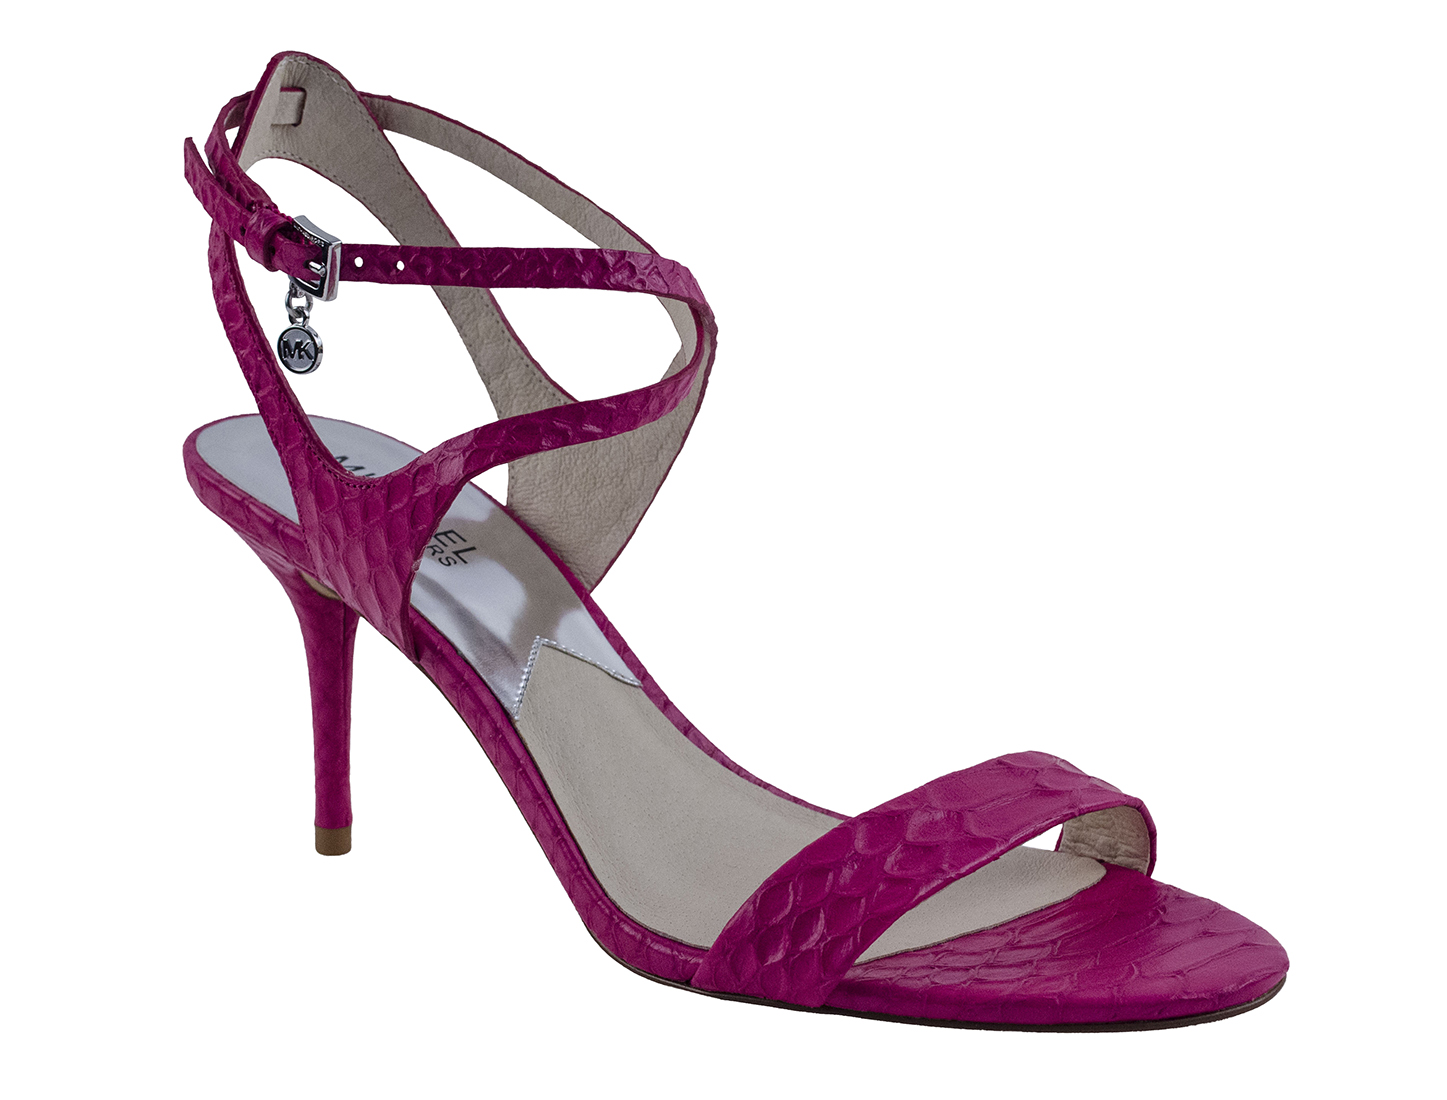 Michael Kors Kaylee Mid Heel Dress Sandal Fuschia Pink Embossed